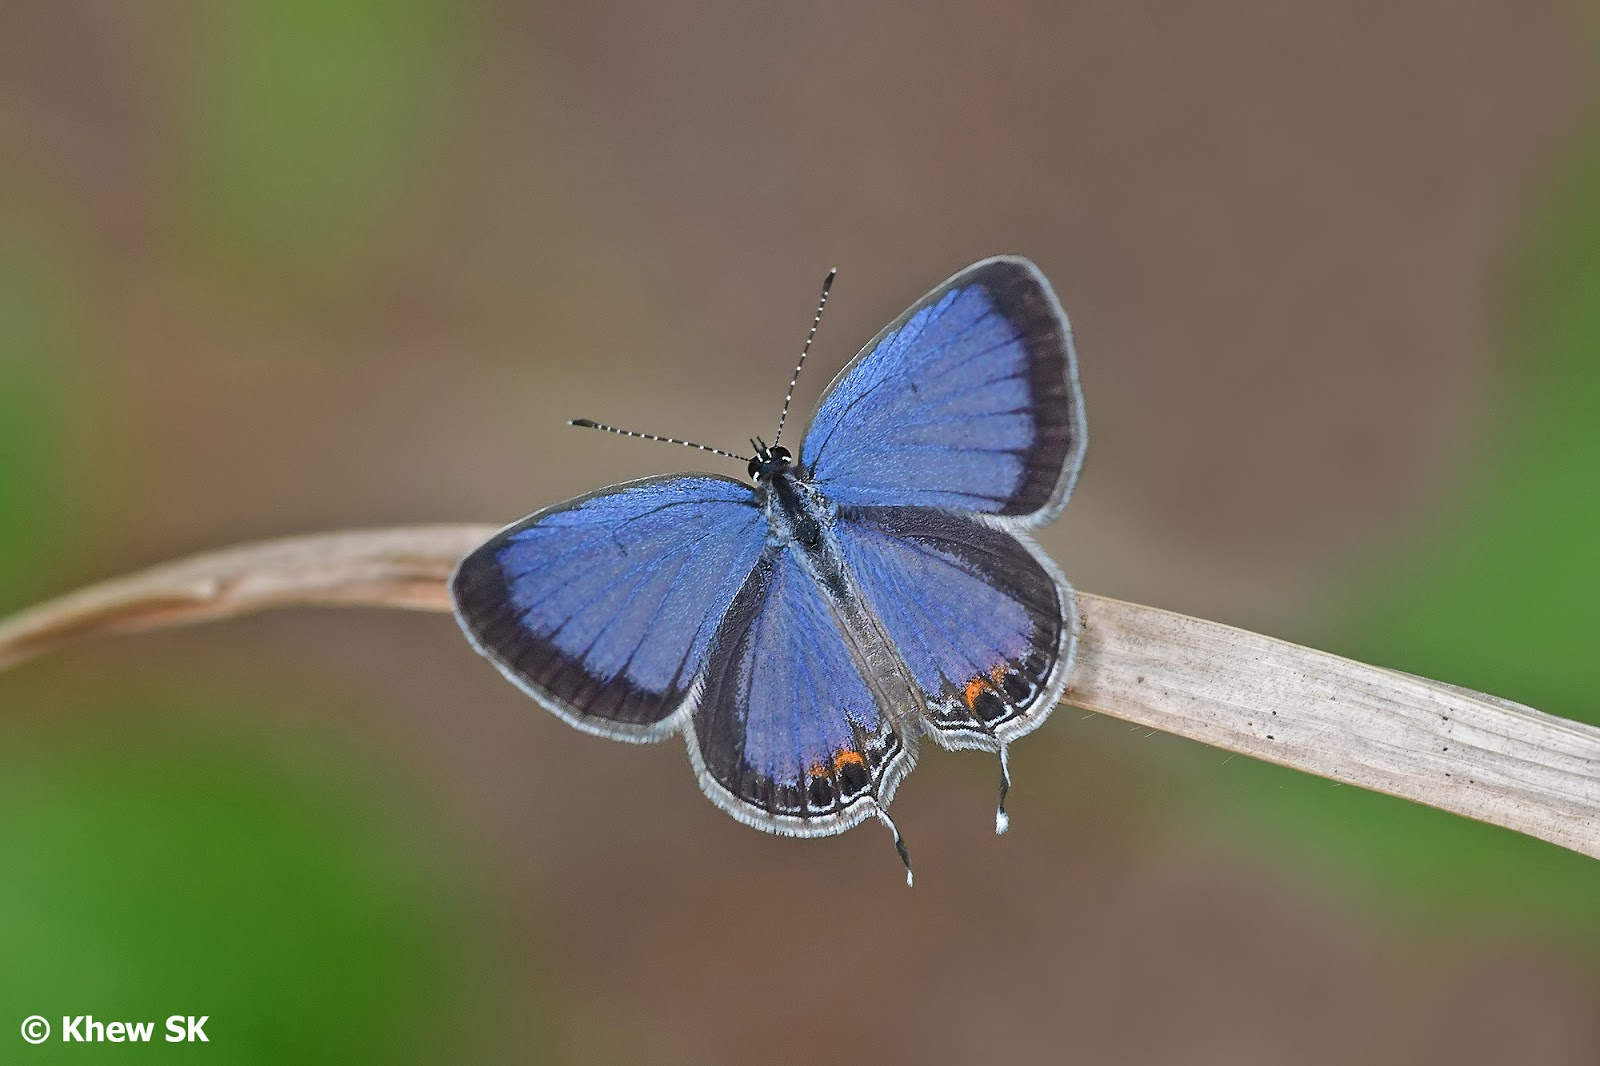 Butterflies of Singapore: Butterfly of the Month - August 2019